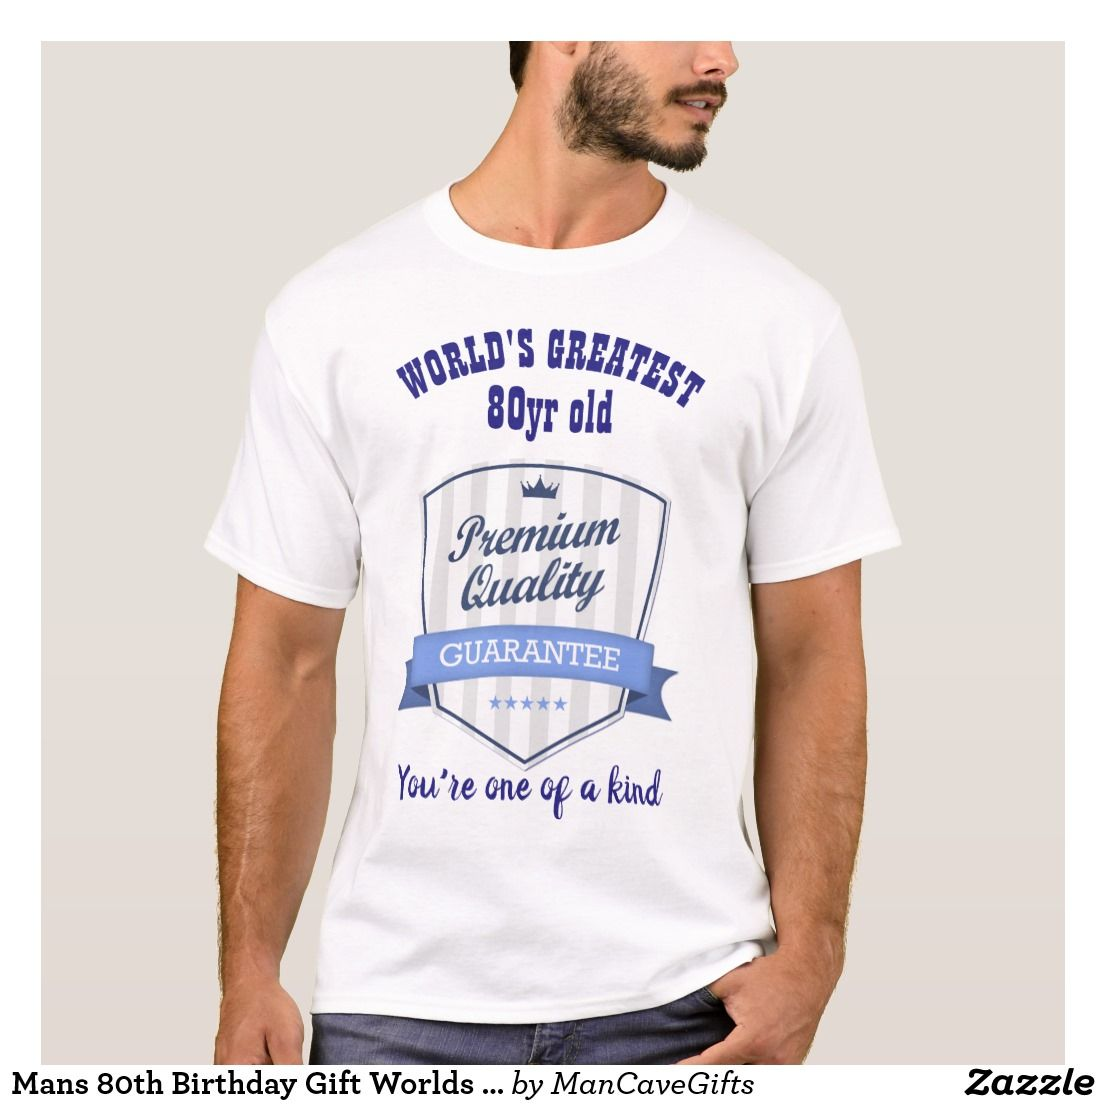 Mans 80th Birthday Gift Worlds Greatest Customized T Shirt